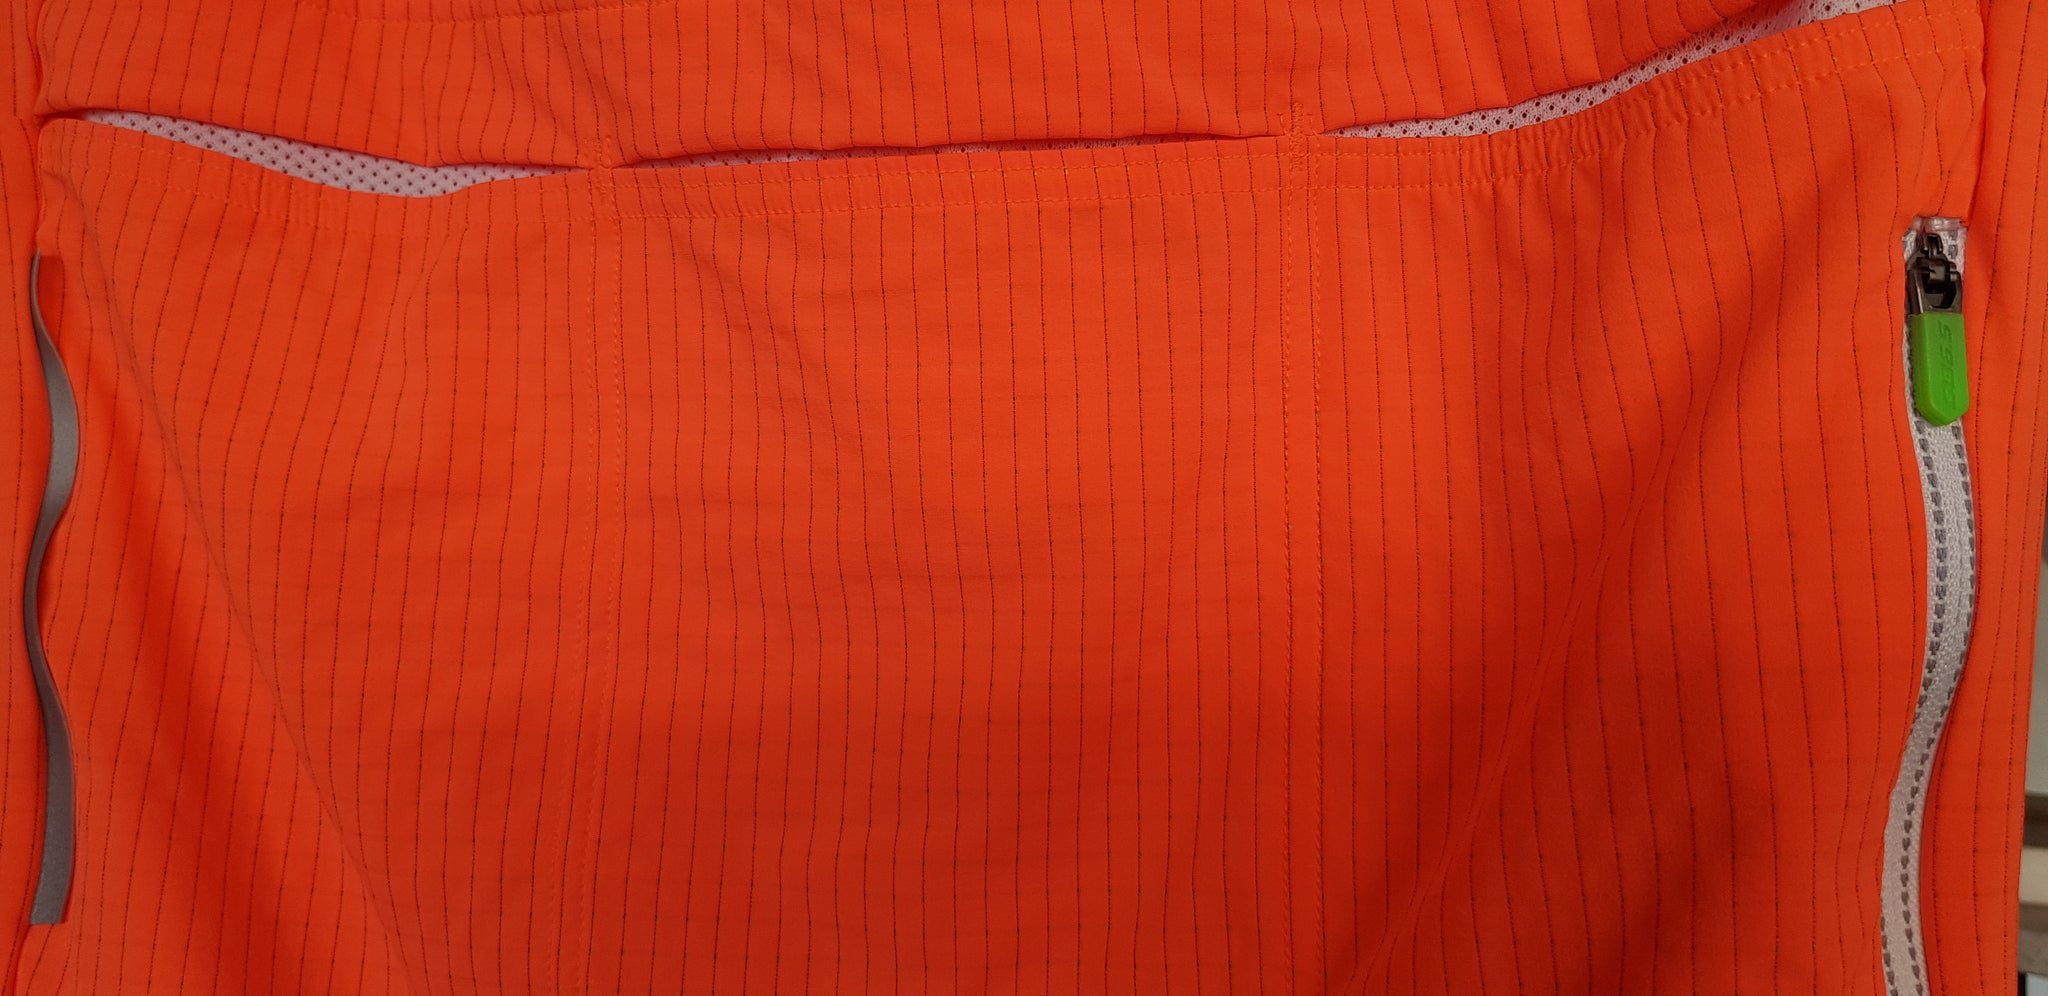 Q36.5 PINSTRIPE MENS JERSEY PERSIMON (ORANGE)